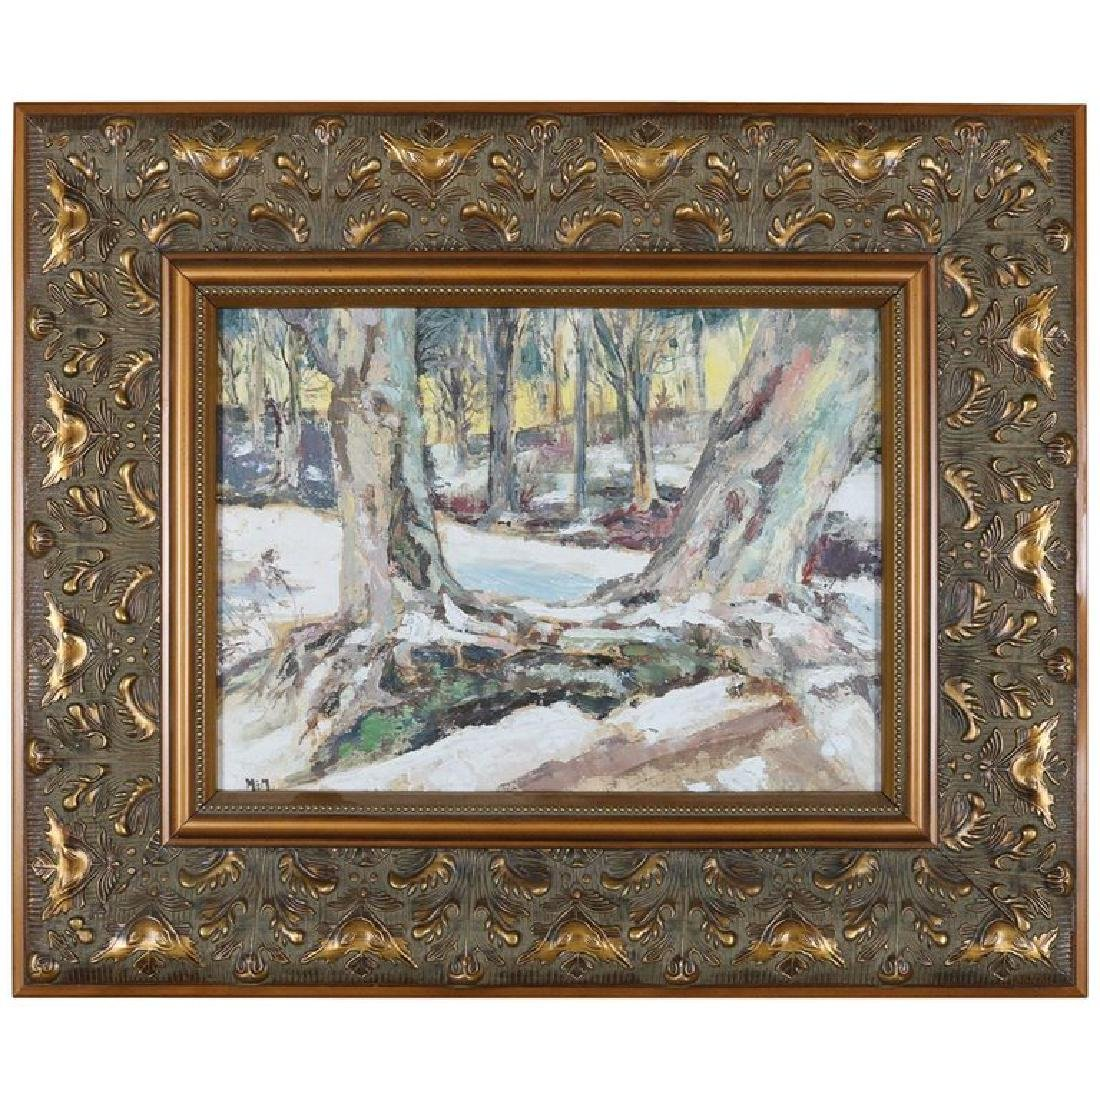 Oil on Canvas Impressionist Winter Landscape Painting